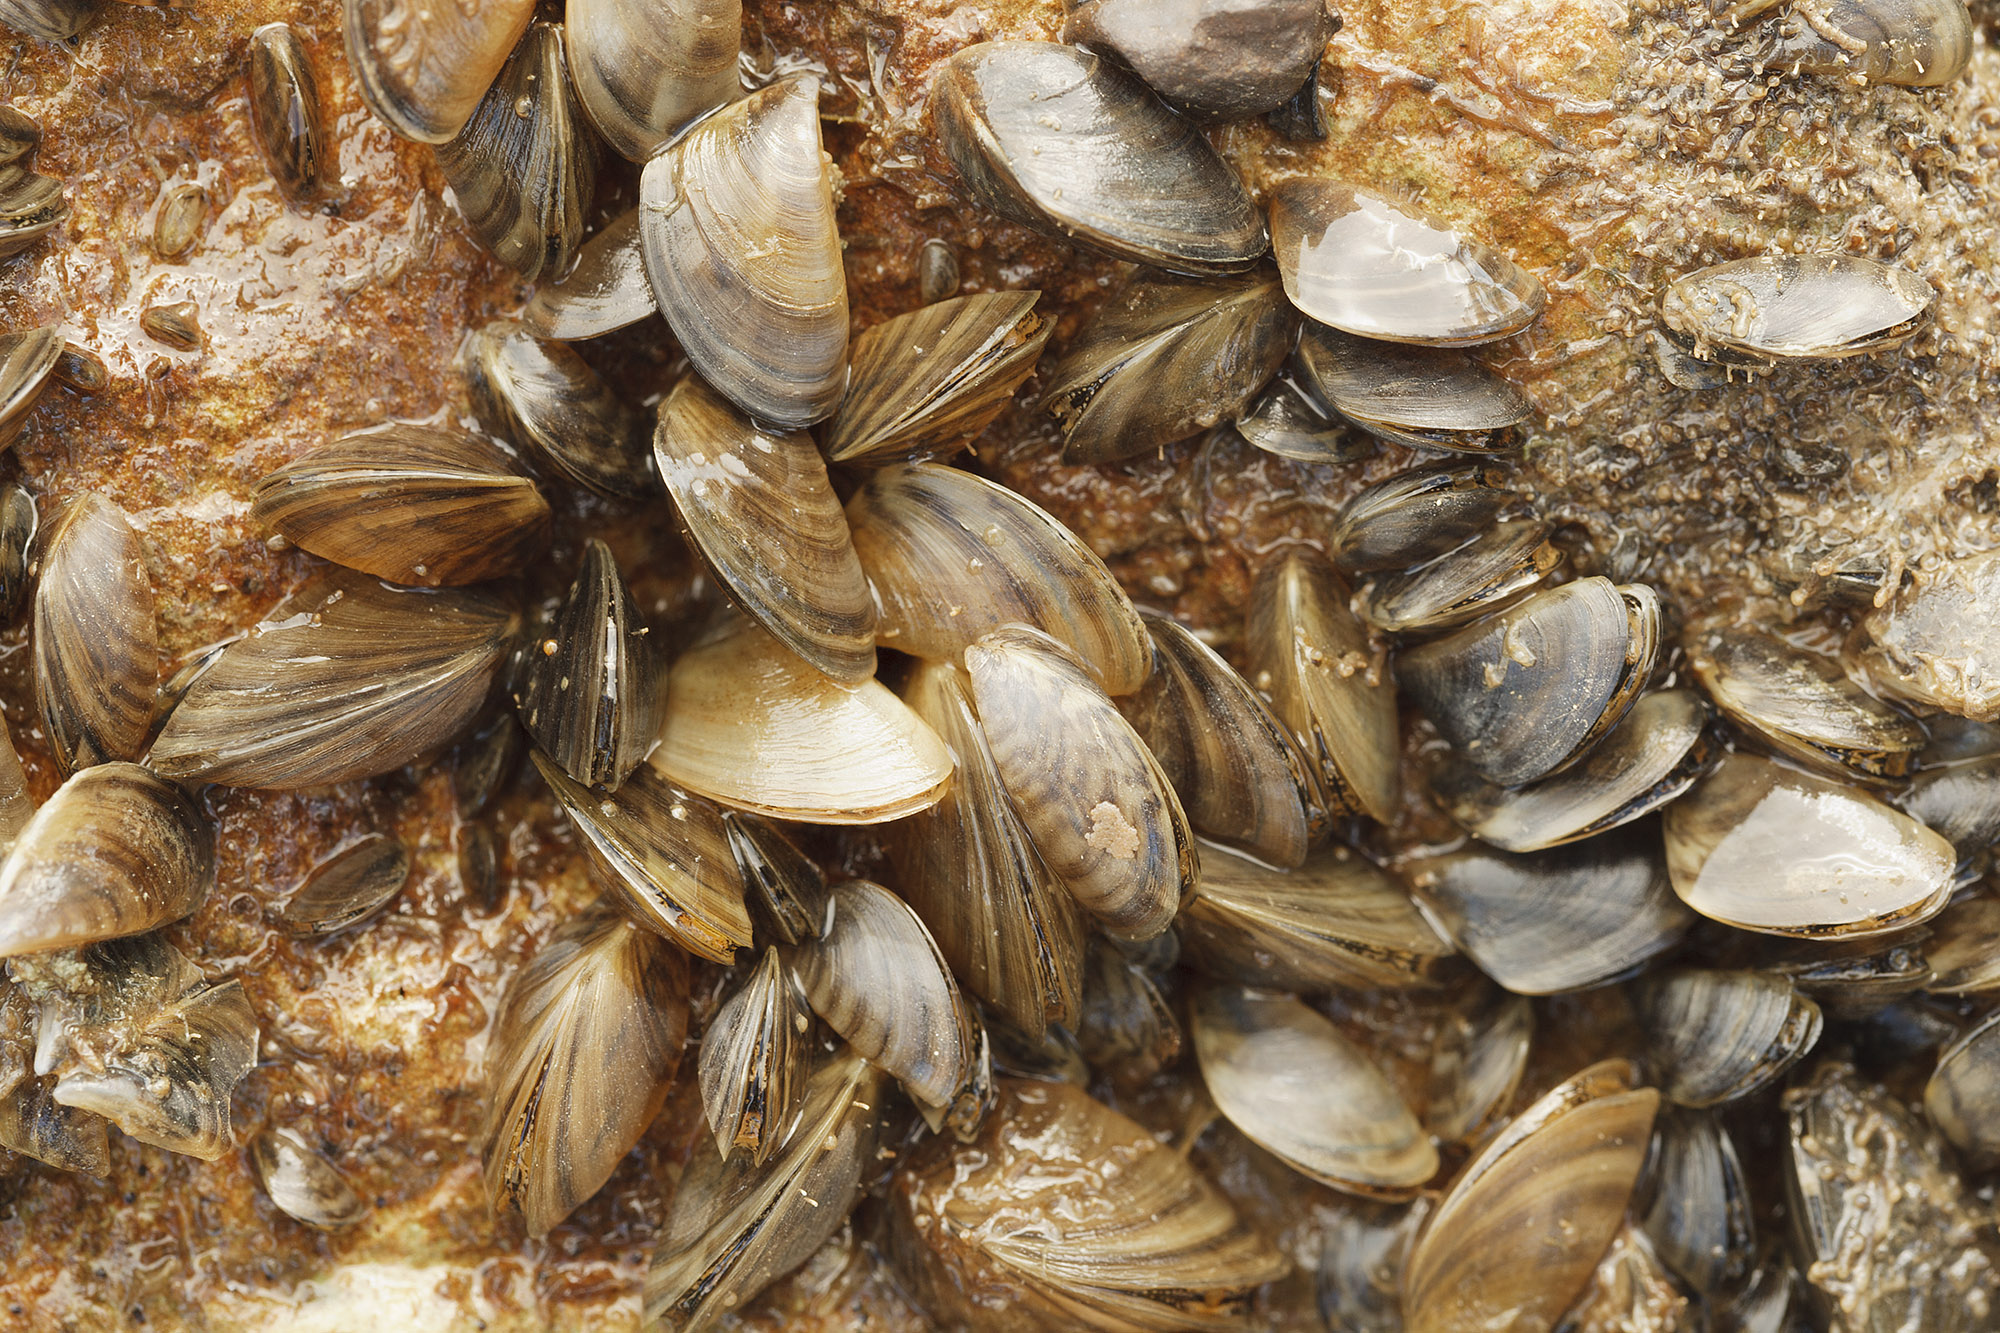 Do zebra mussels in our lakes have an upside? State experts say no